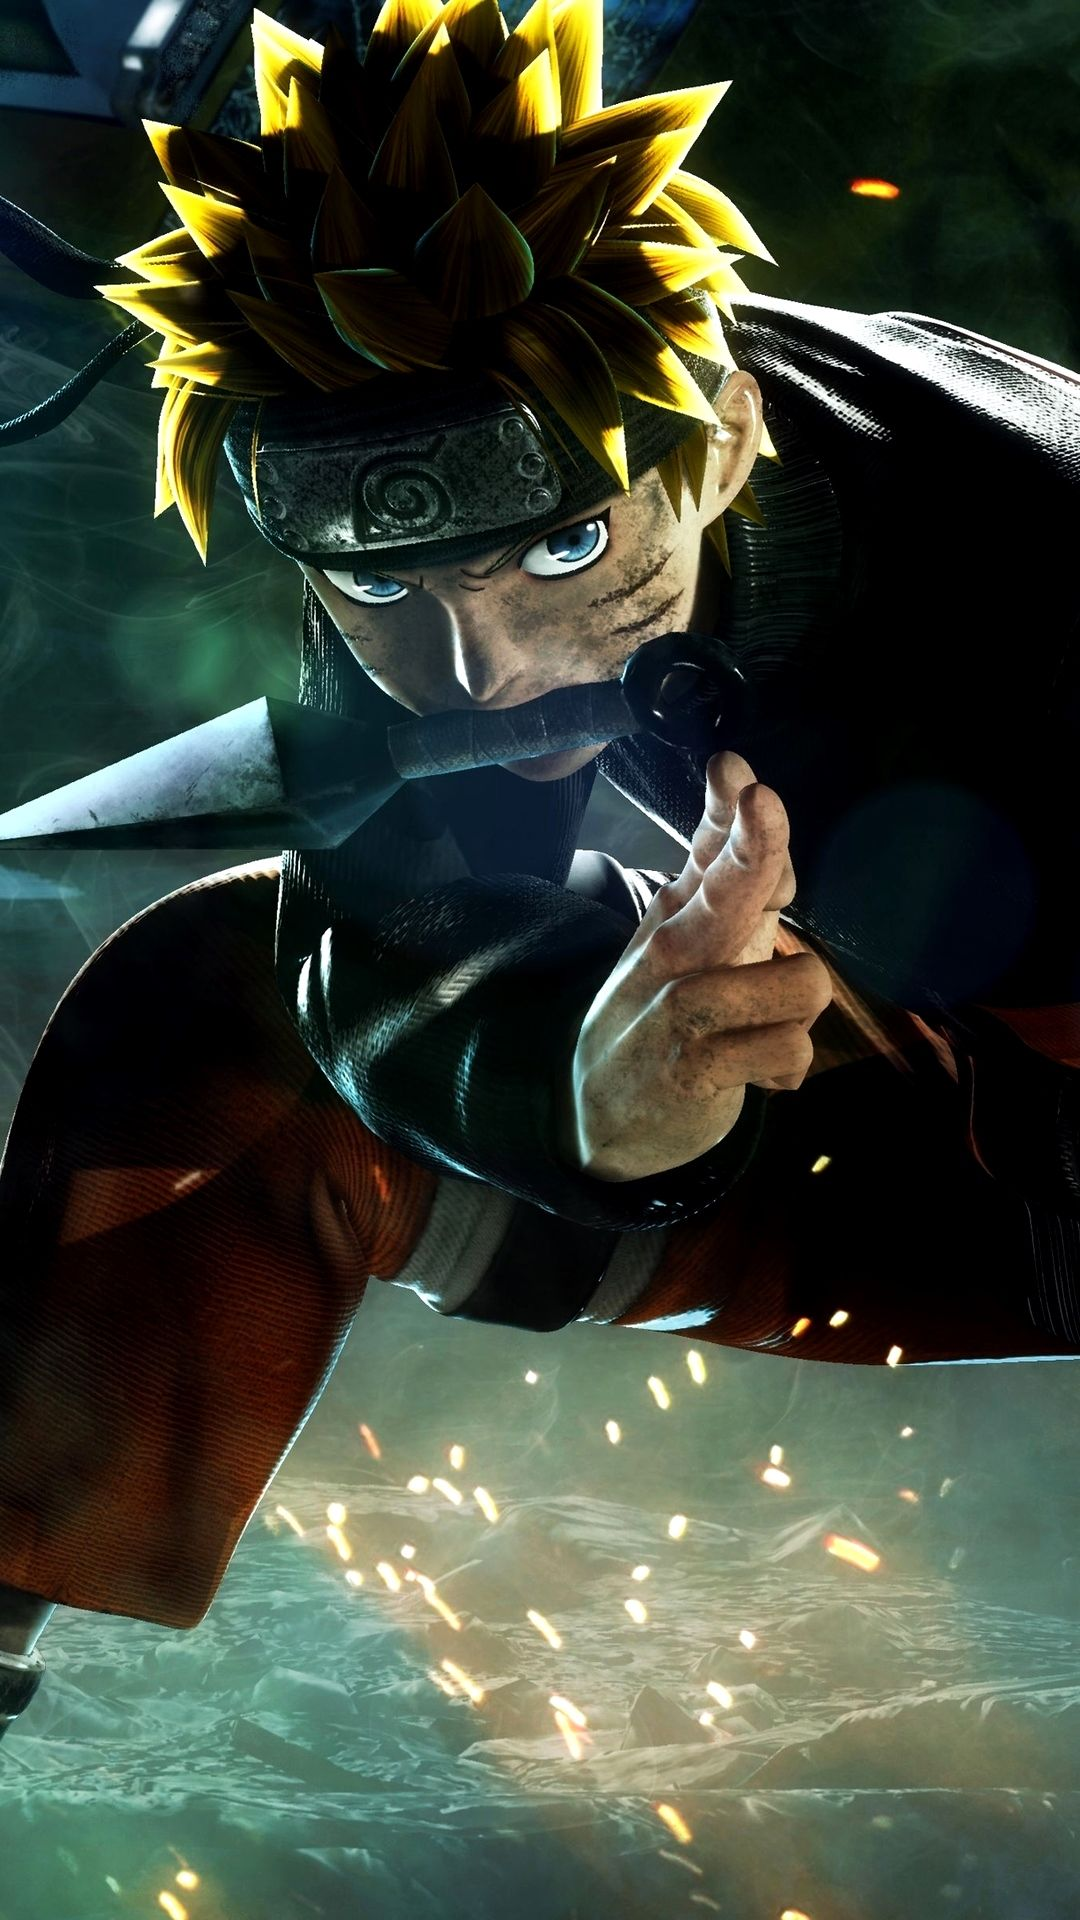 Naruto Wallpaper 4k Mobile Ideas In 2020 Naruto Wallpaper Iphone Naruto Wallpaper Goku Wallpaper